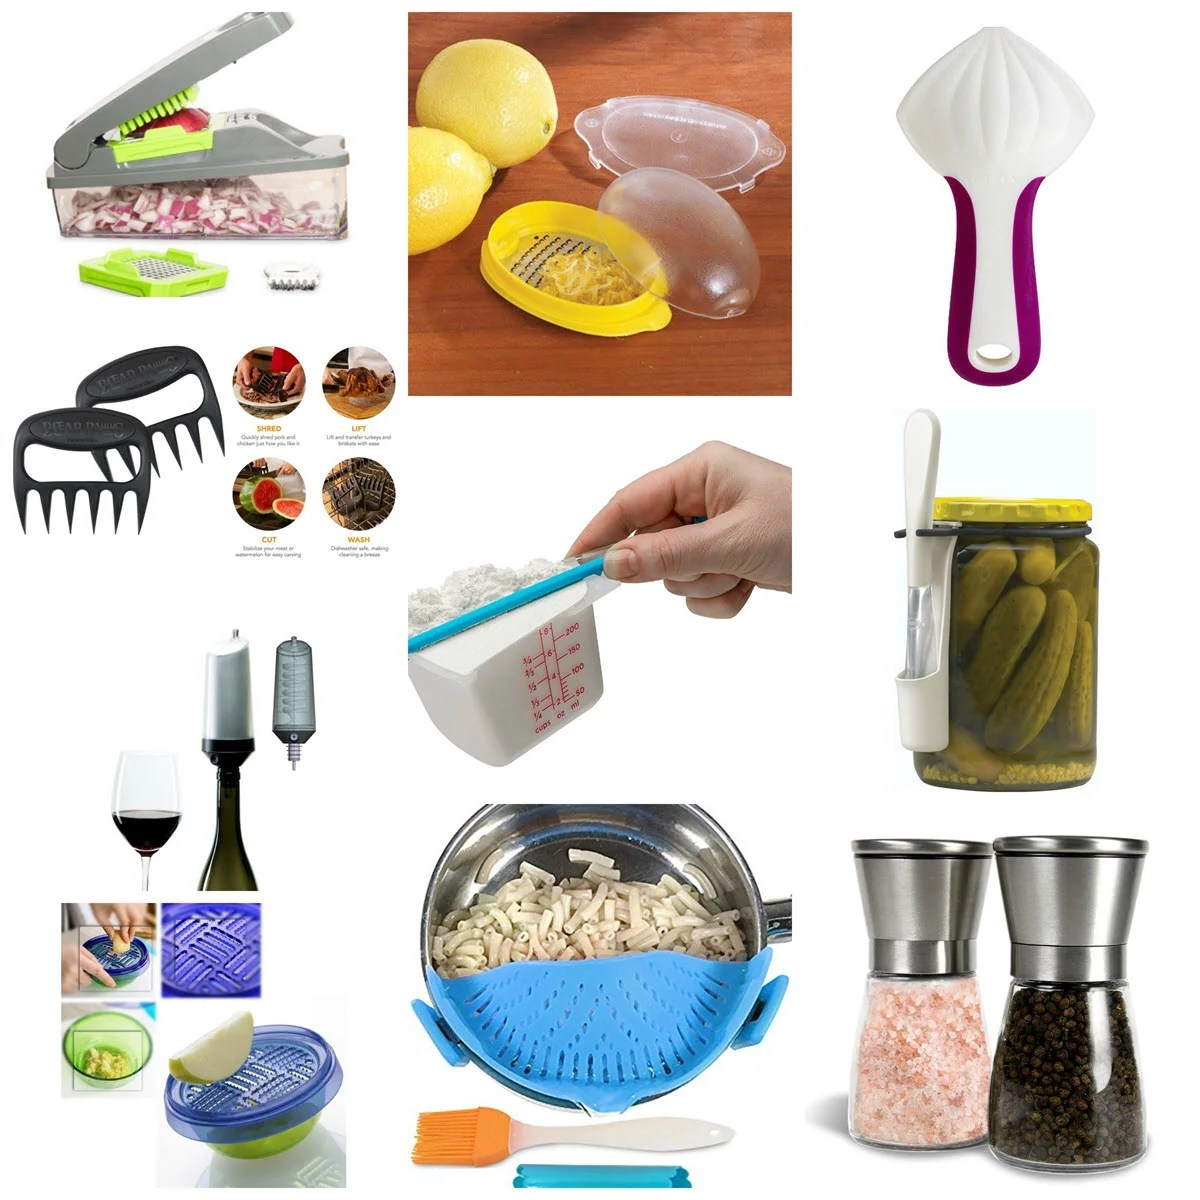 Discount Kitchen Aids 10 Innovative Affordable Kitchen Tools That Will Make You